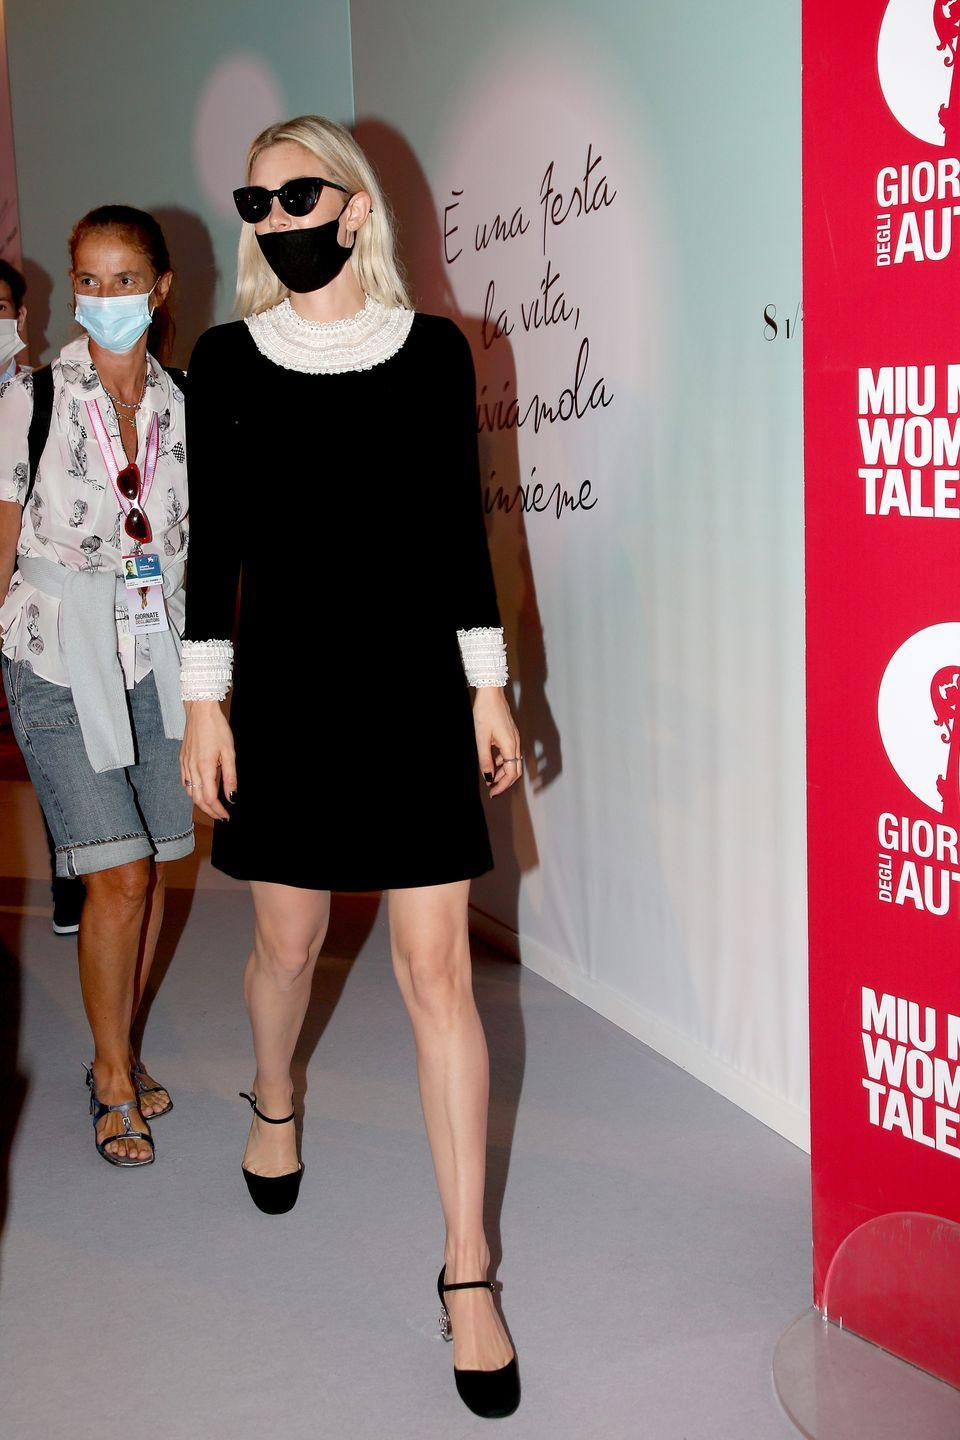 <p>Vanessa wore a black mini dress with cream lace and kitten heels to the Miu Miu Women's Tales event.</p>